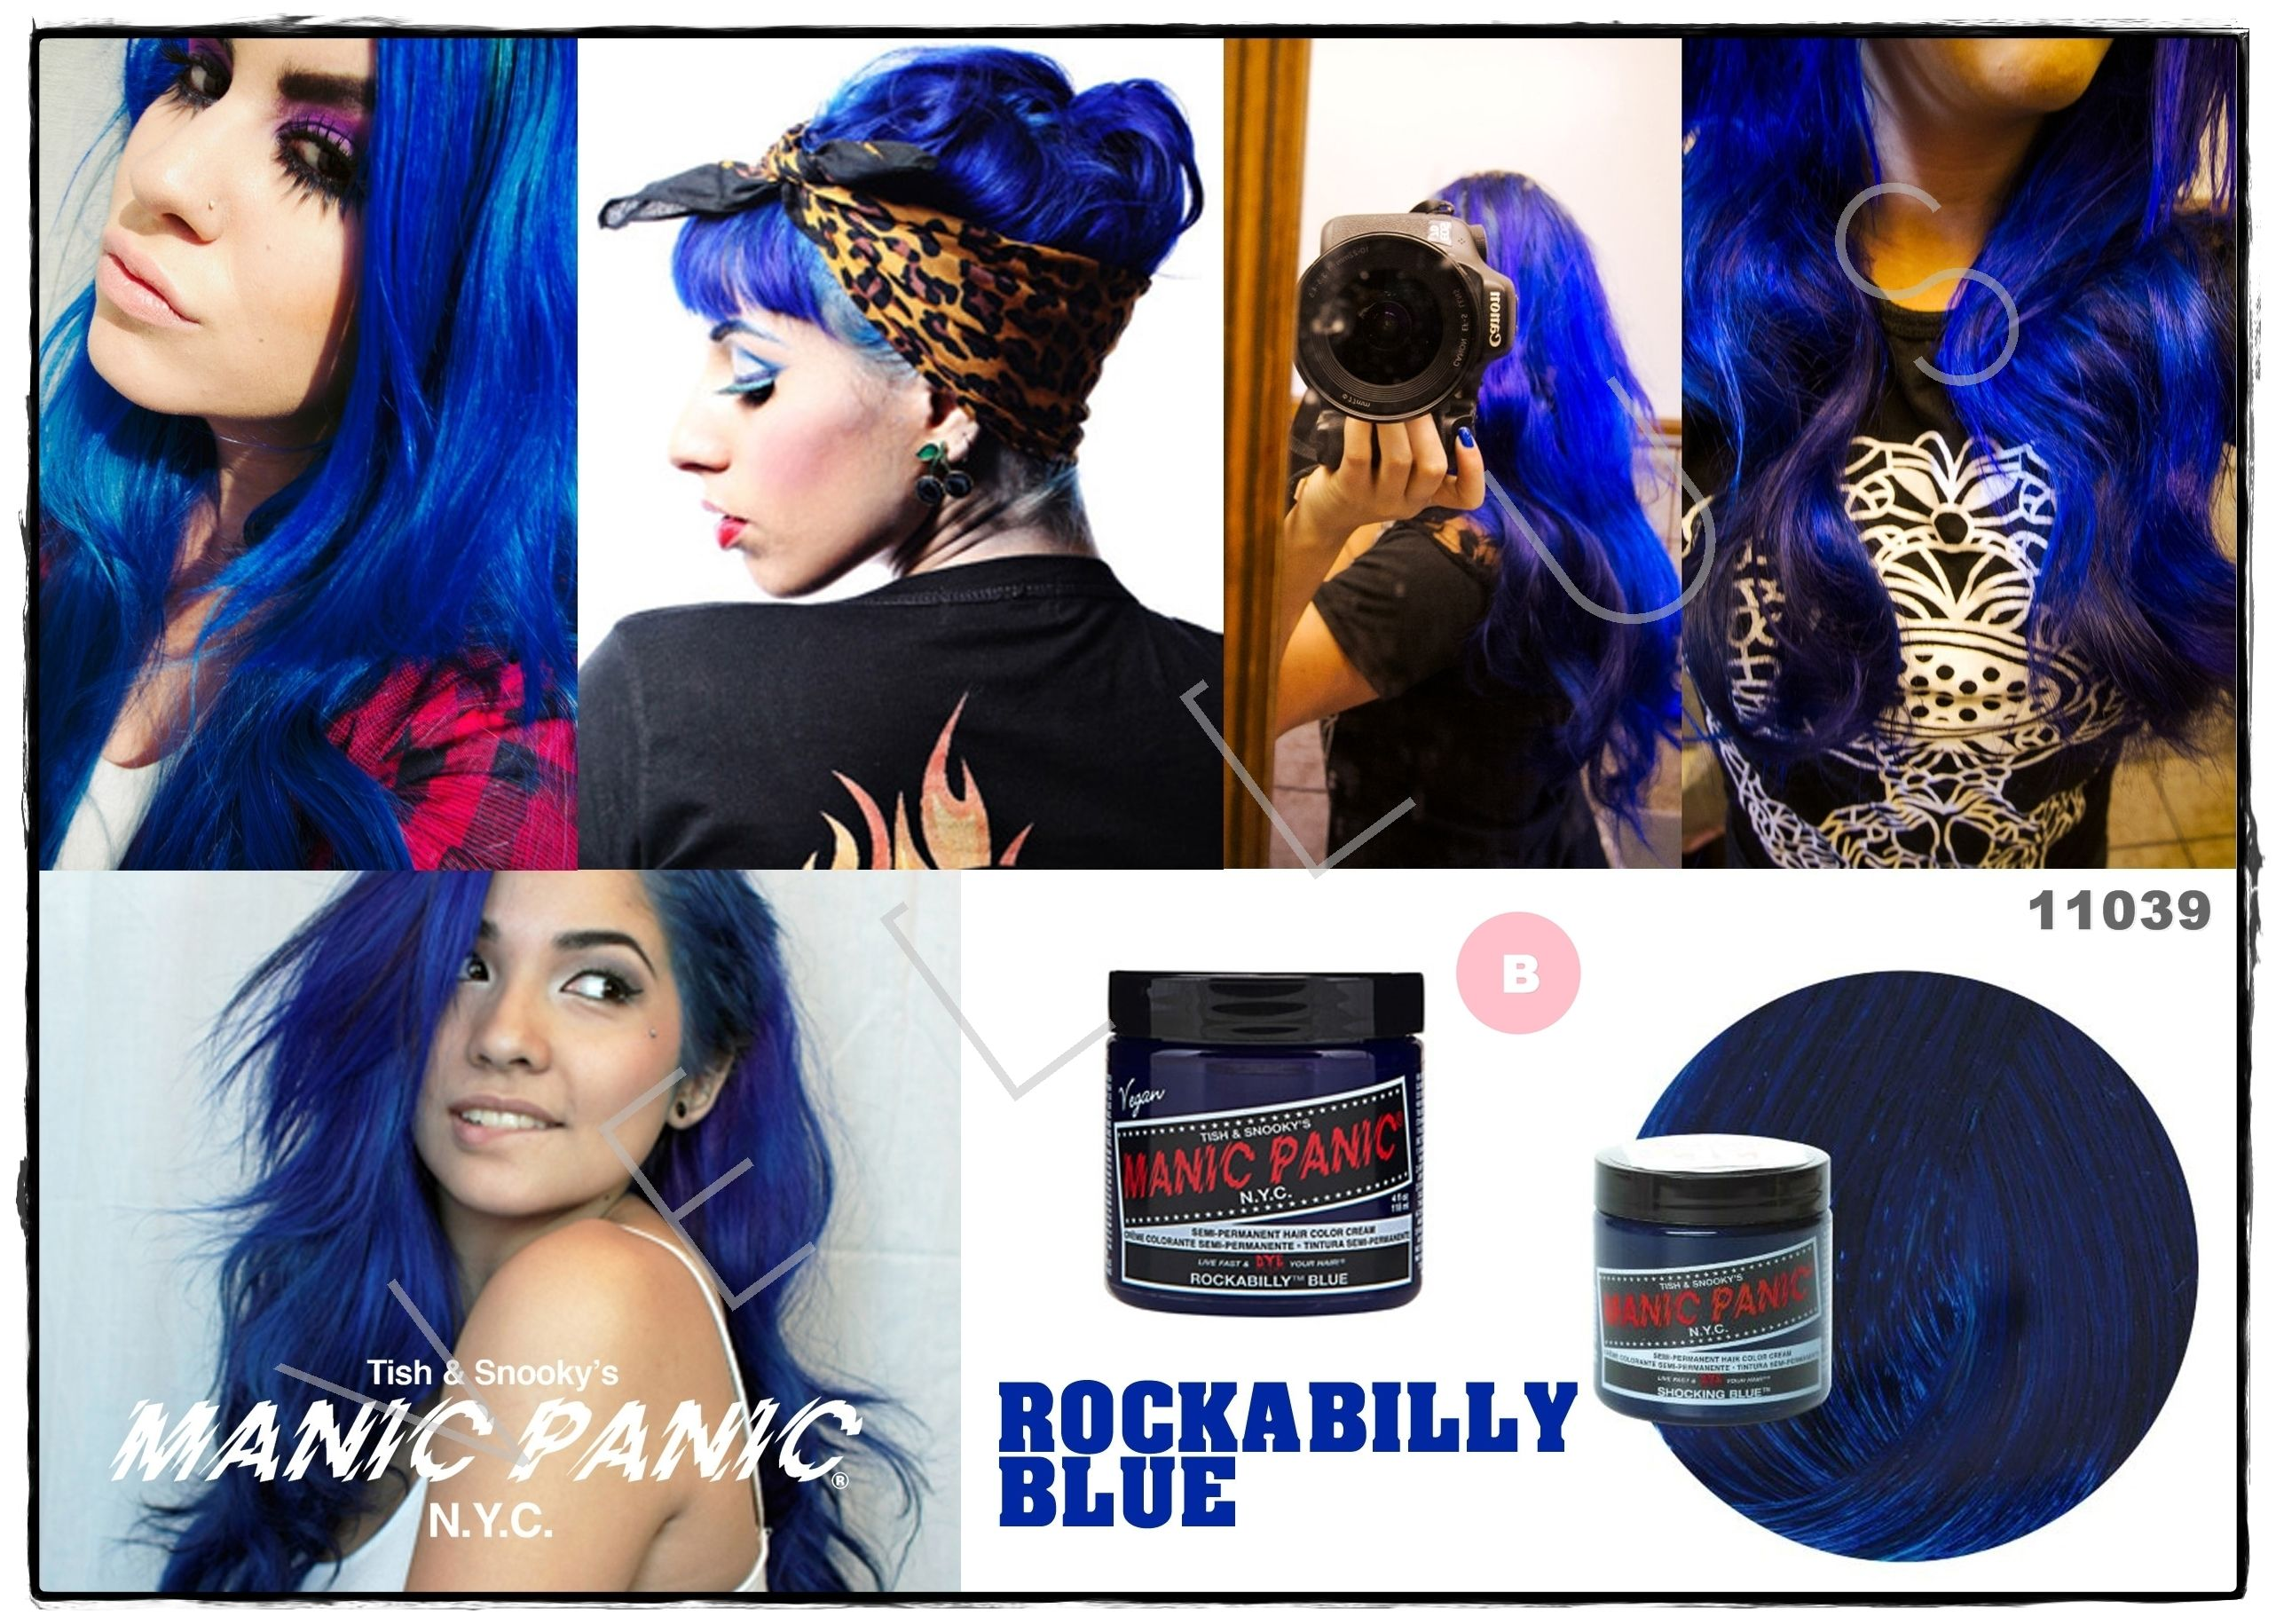 Manic Panic Classic Rockabilly Blue Vellus Hair Studio 83a Tanjong Pagar Road S 088504 Tel 62246566 Cool Hair Color Manic Panic Hair Dye Hair Color